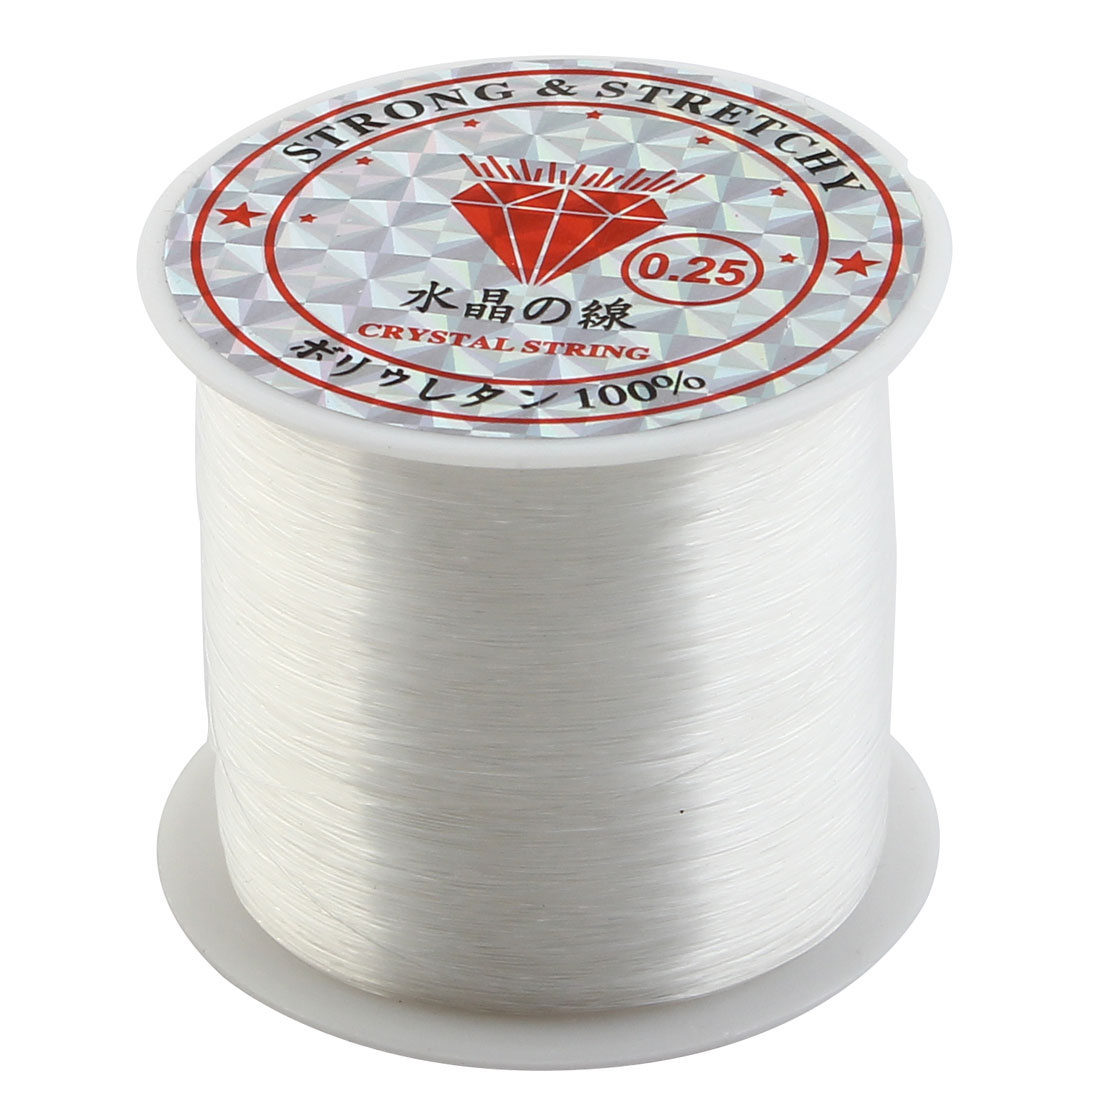 Fisherman Angling Fishing Reel Spool Line Thread Clear 0.25mm Diameter